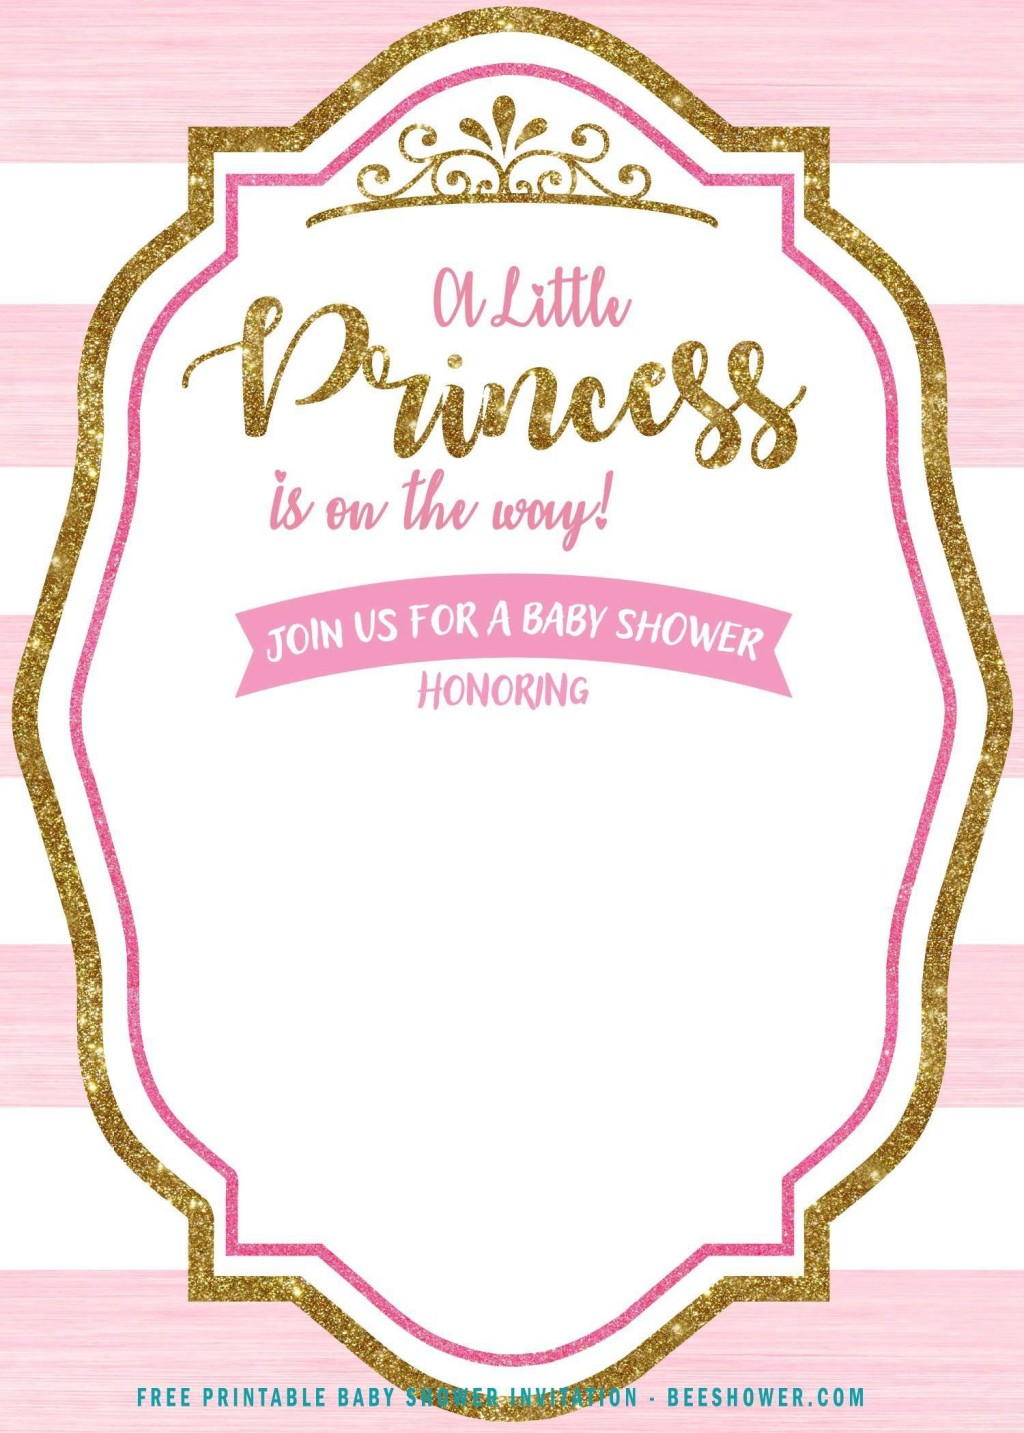 007 Stupendou Free Princes Baby Shower Invitation Template For Word Picture Large